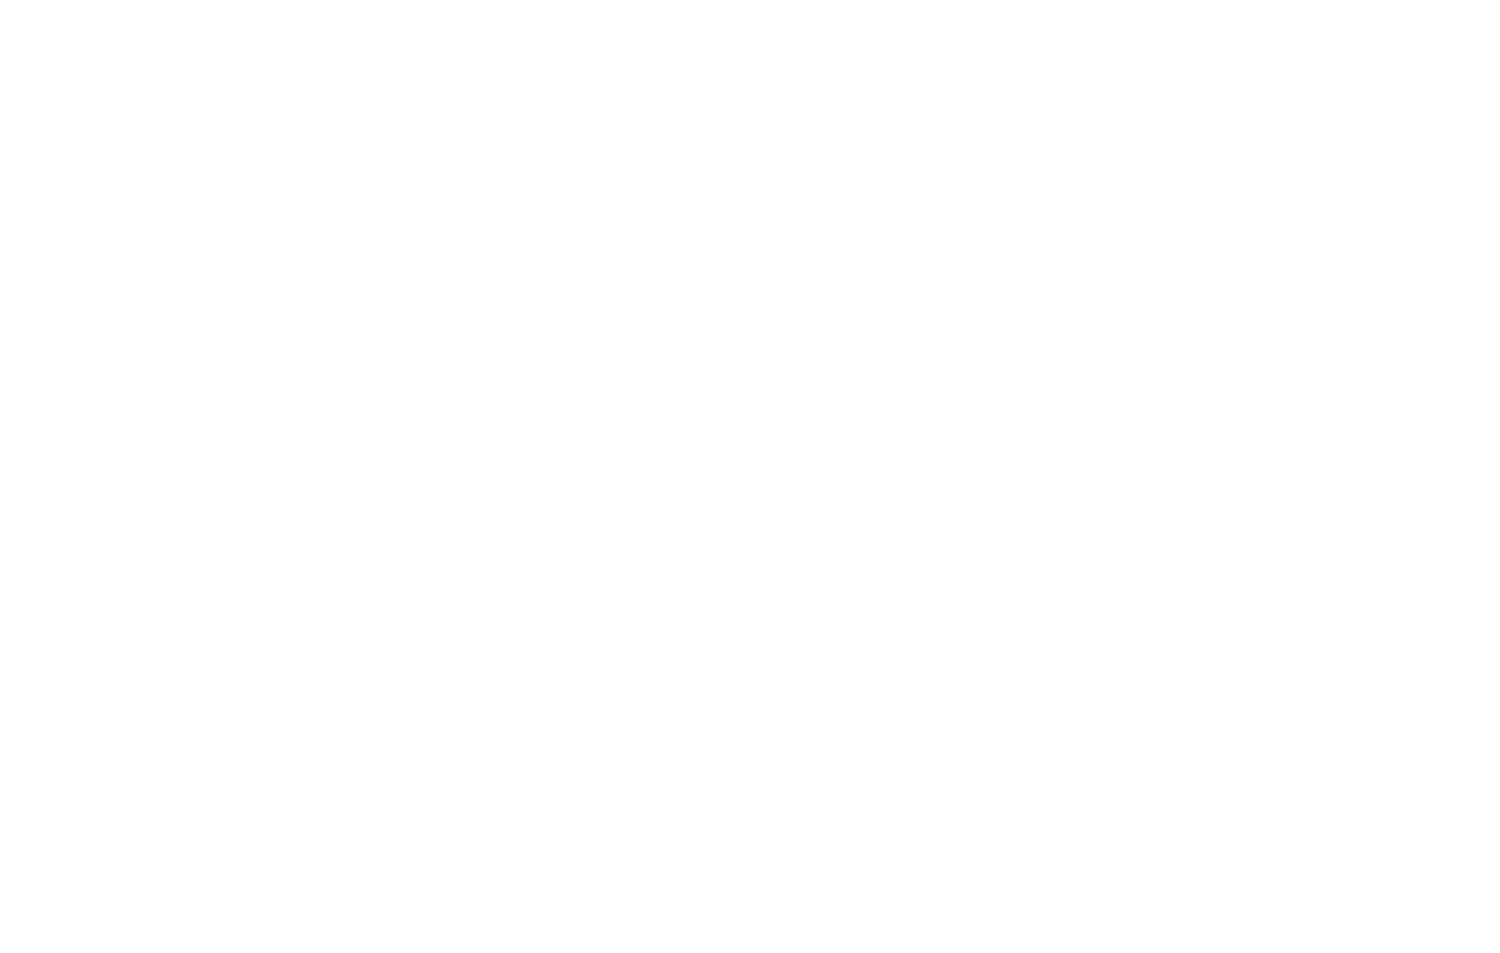 New Creations Flower Co.